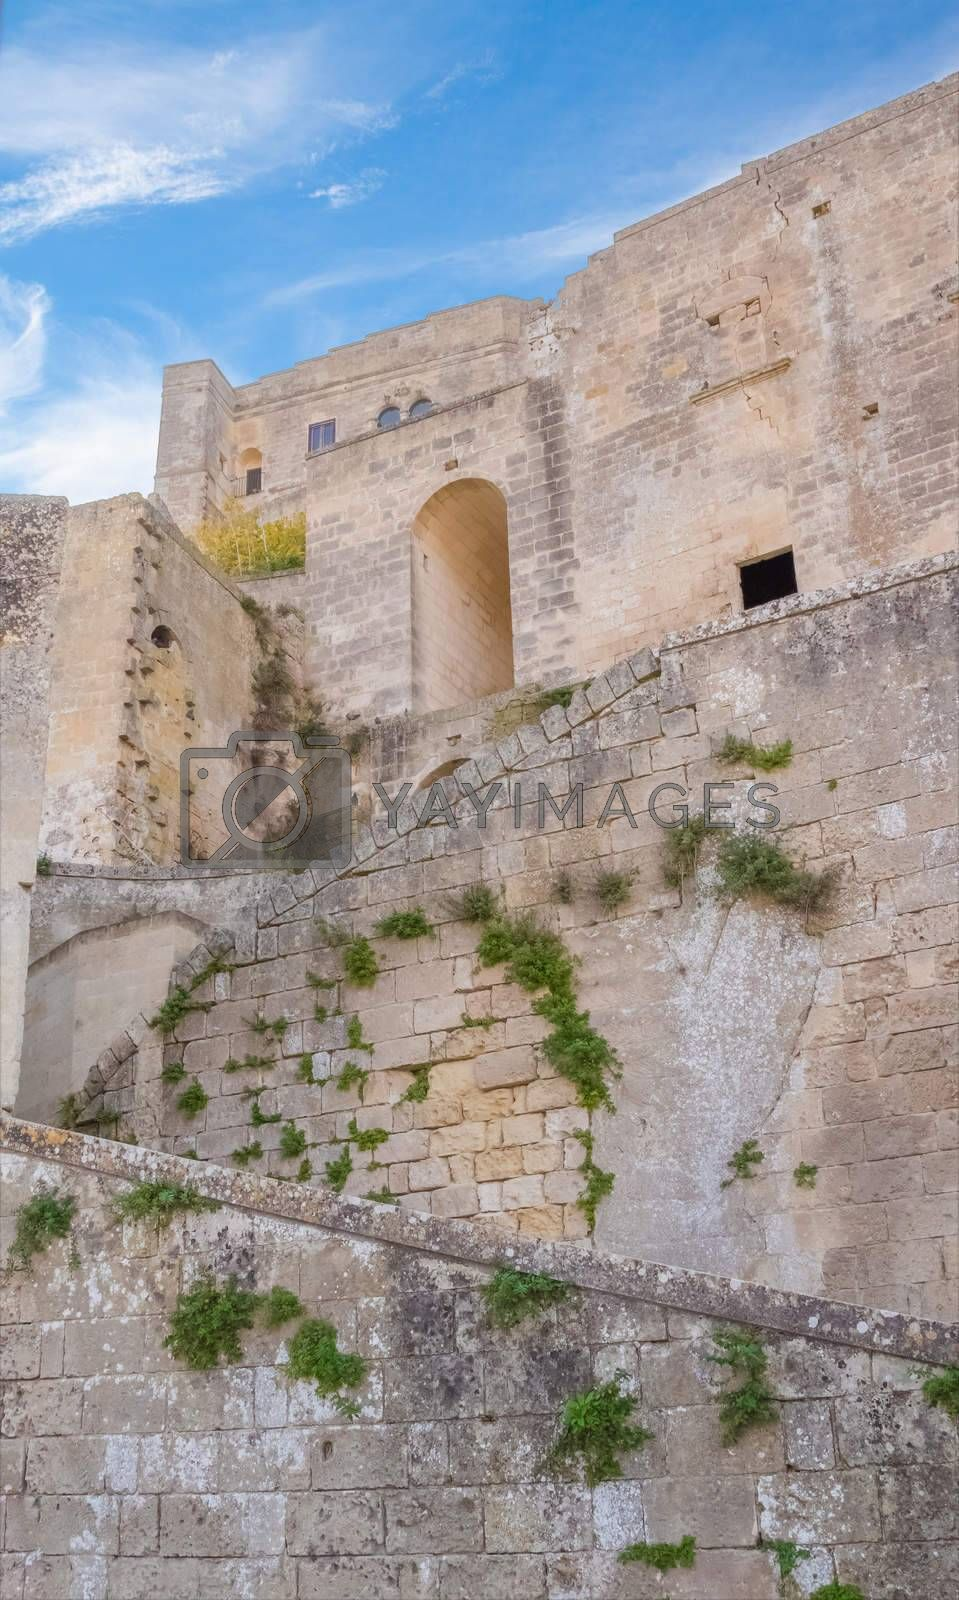 historic building in Matera in Italy UNESCO European Capital of Culture 2019, details of old wall and stairs